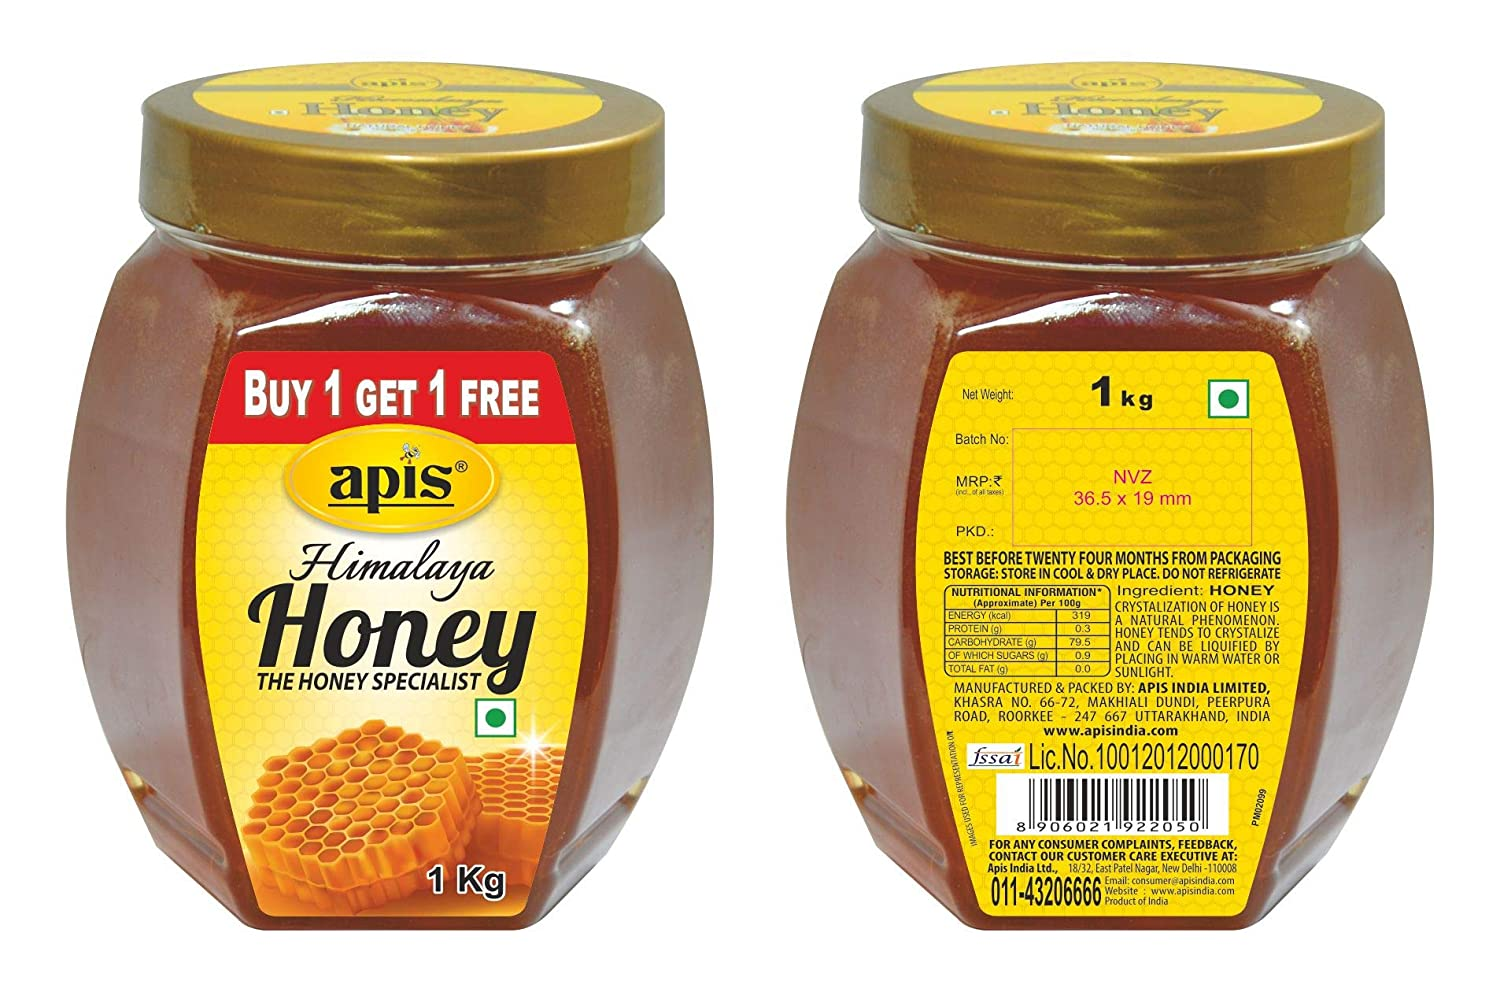 APIS HIMALAYA HONEY 1KG (BUY 1 GET 1 FREE)